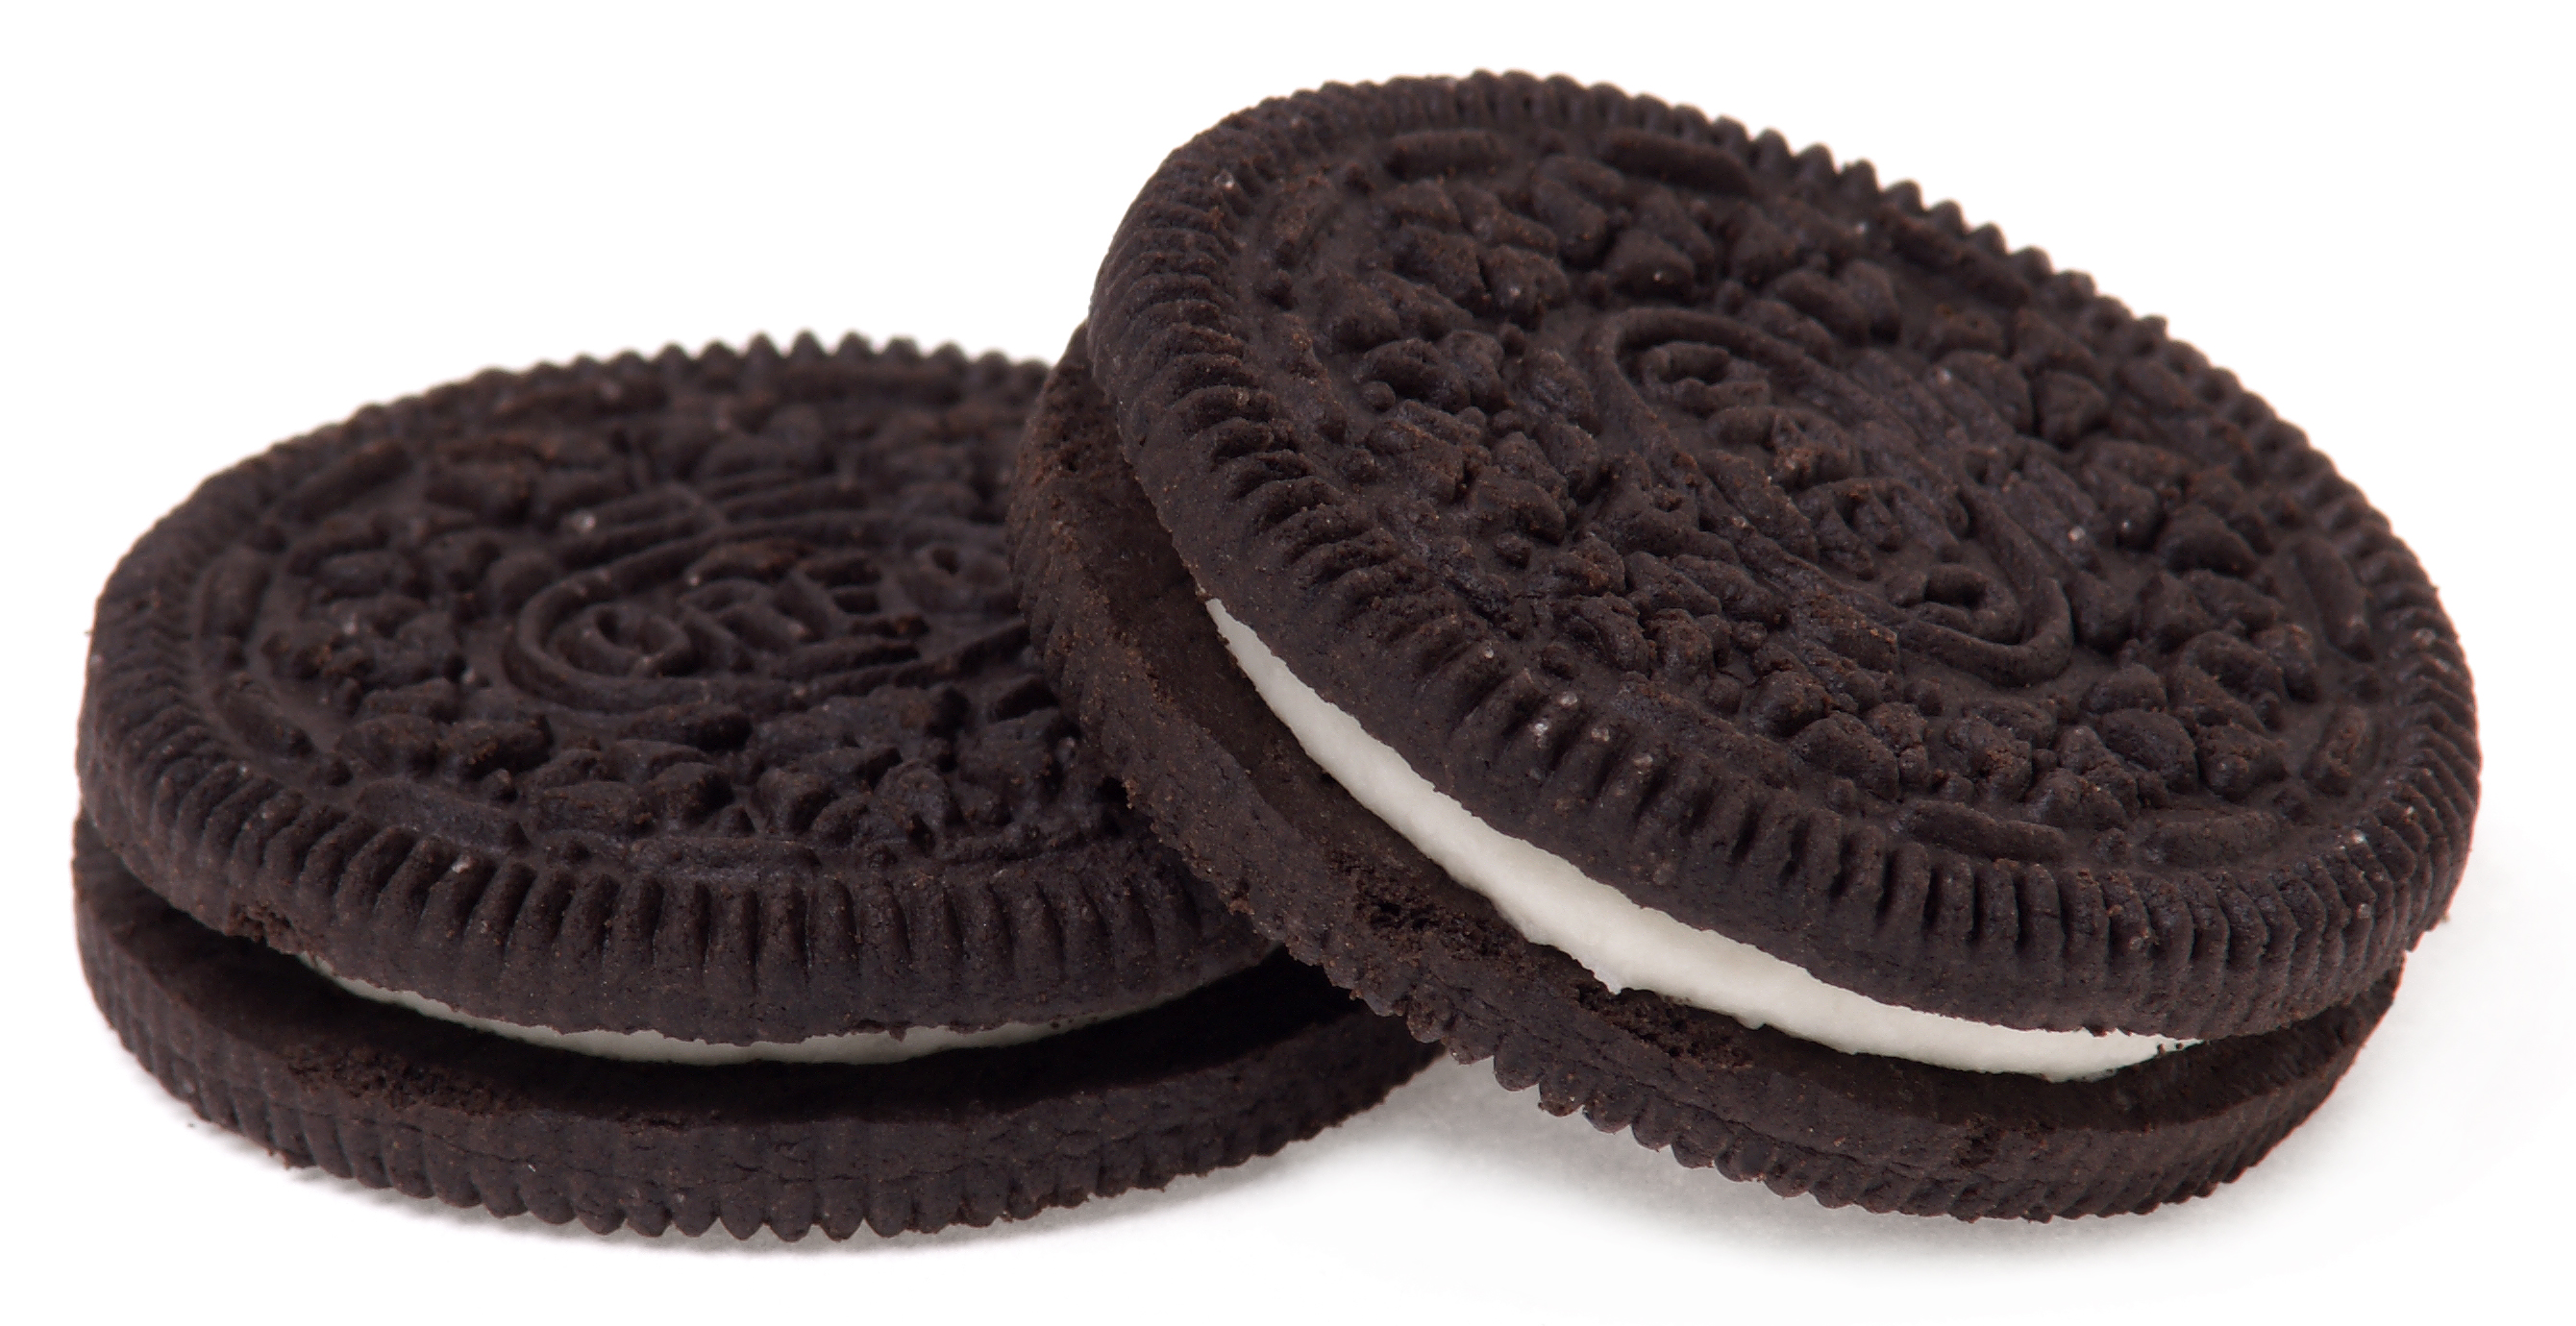 oreo cookies essay Nabisco oreo cookies, a brand that is older than the automobile assembly line it is estimated that an average of 43 billion cookies have been eaten each year over the last 90 years.